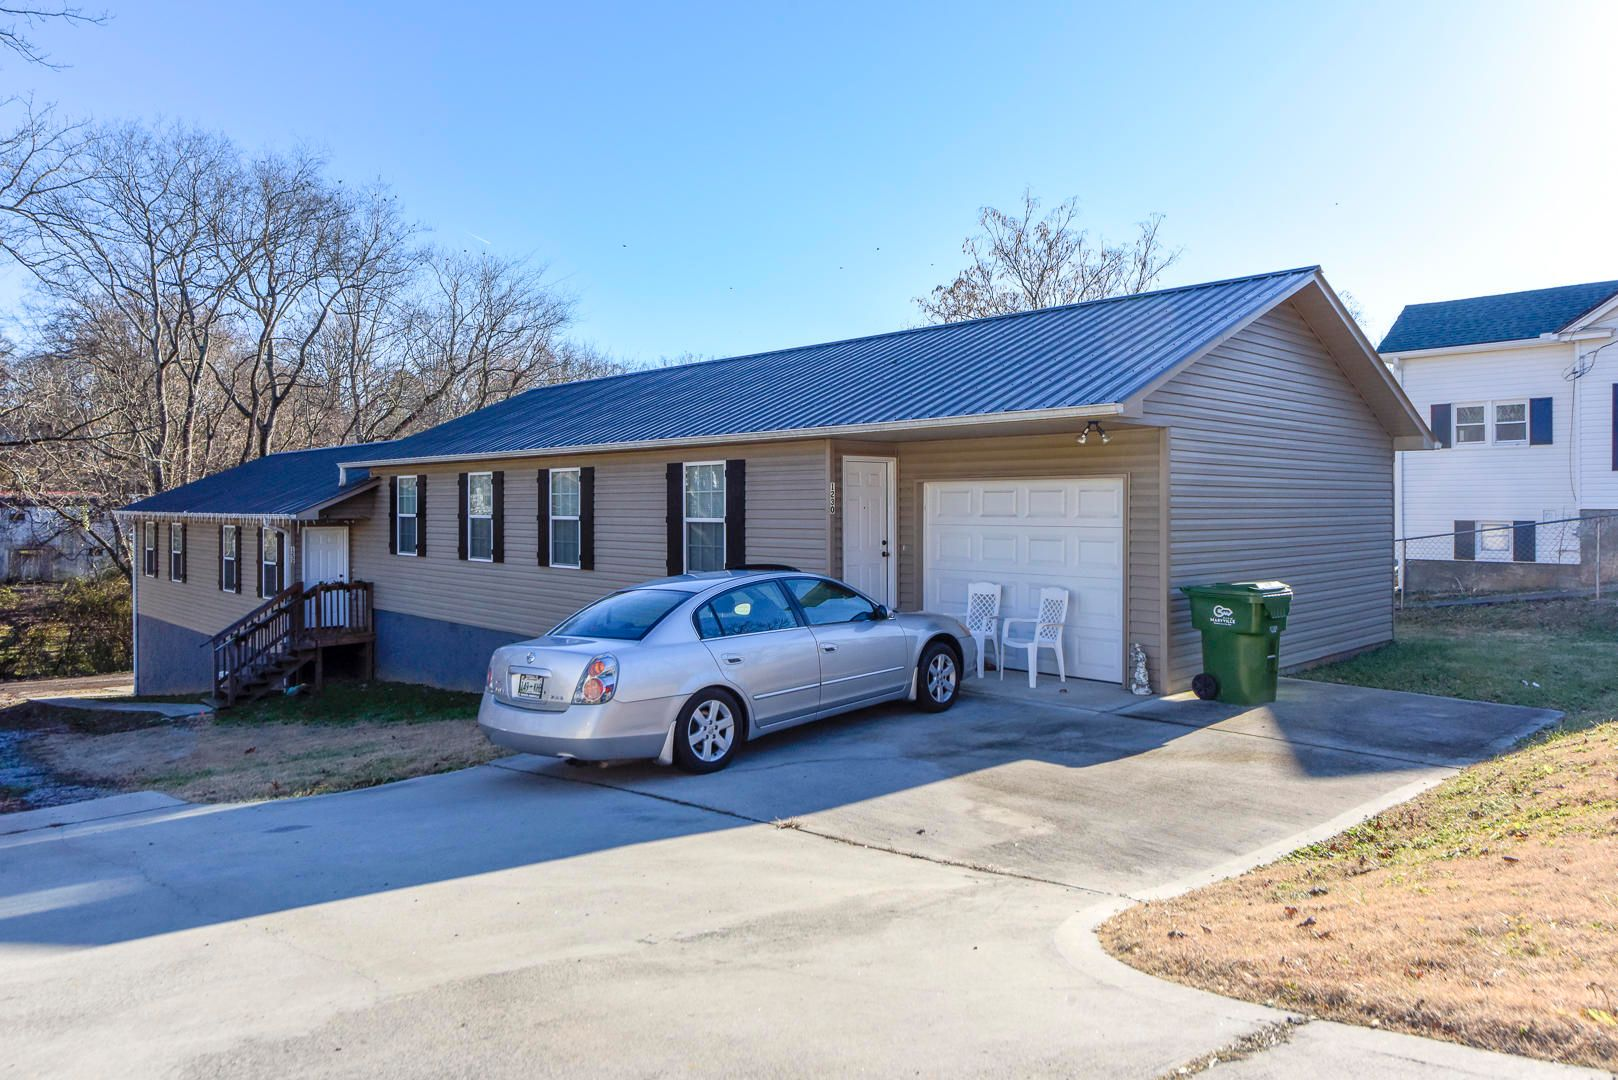 Duplex in Maryville City